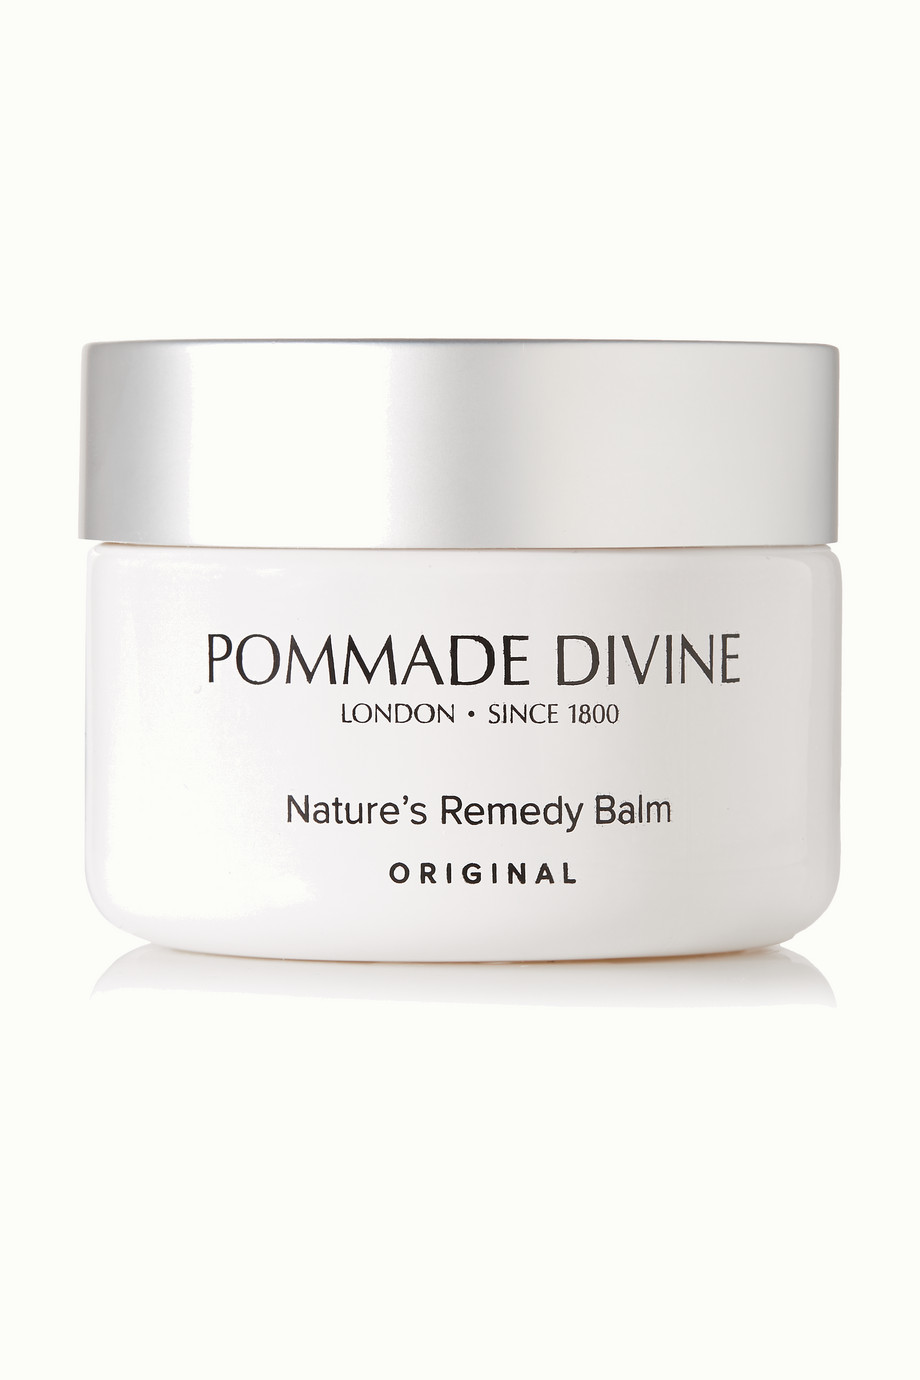 Pommade Divine Nature's Remedy Balm, 50ml